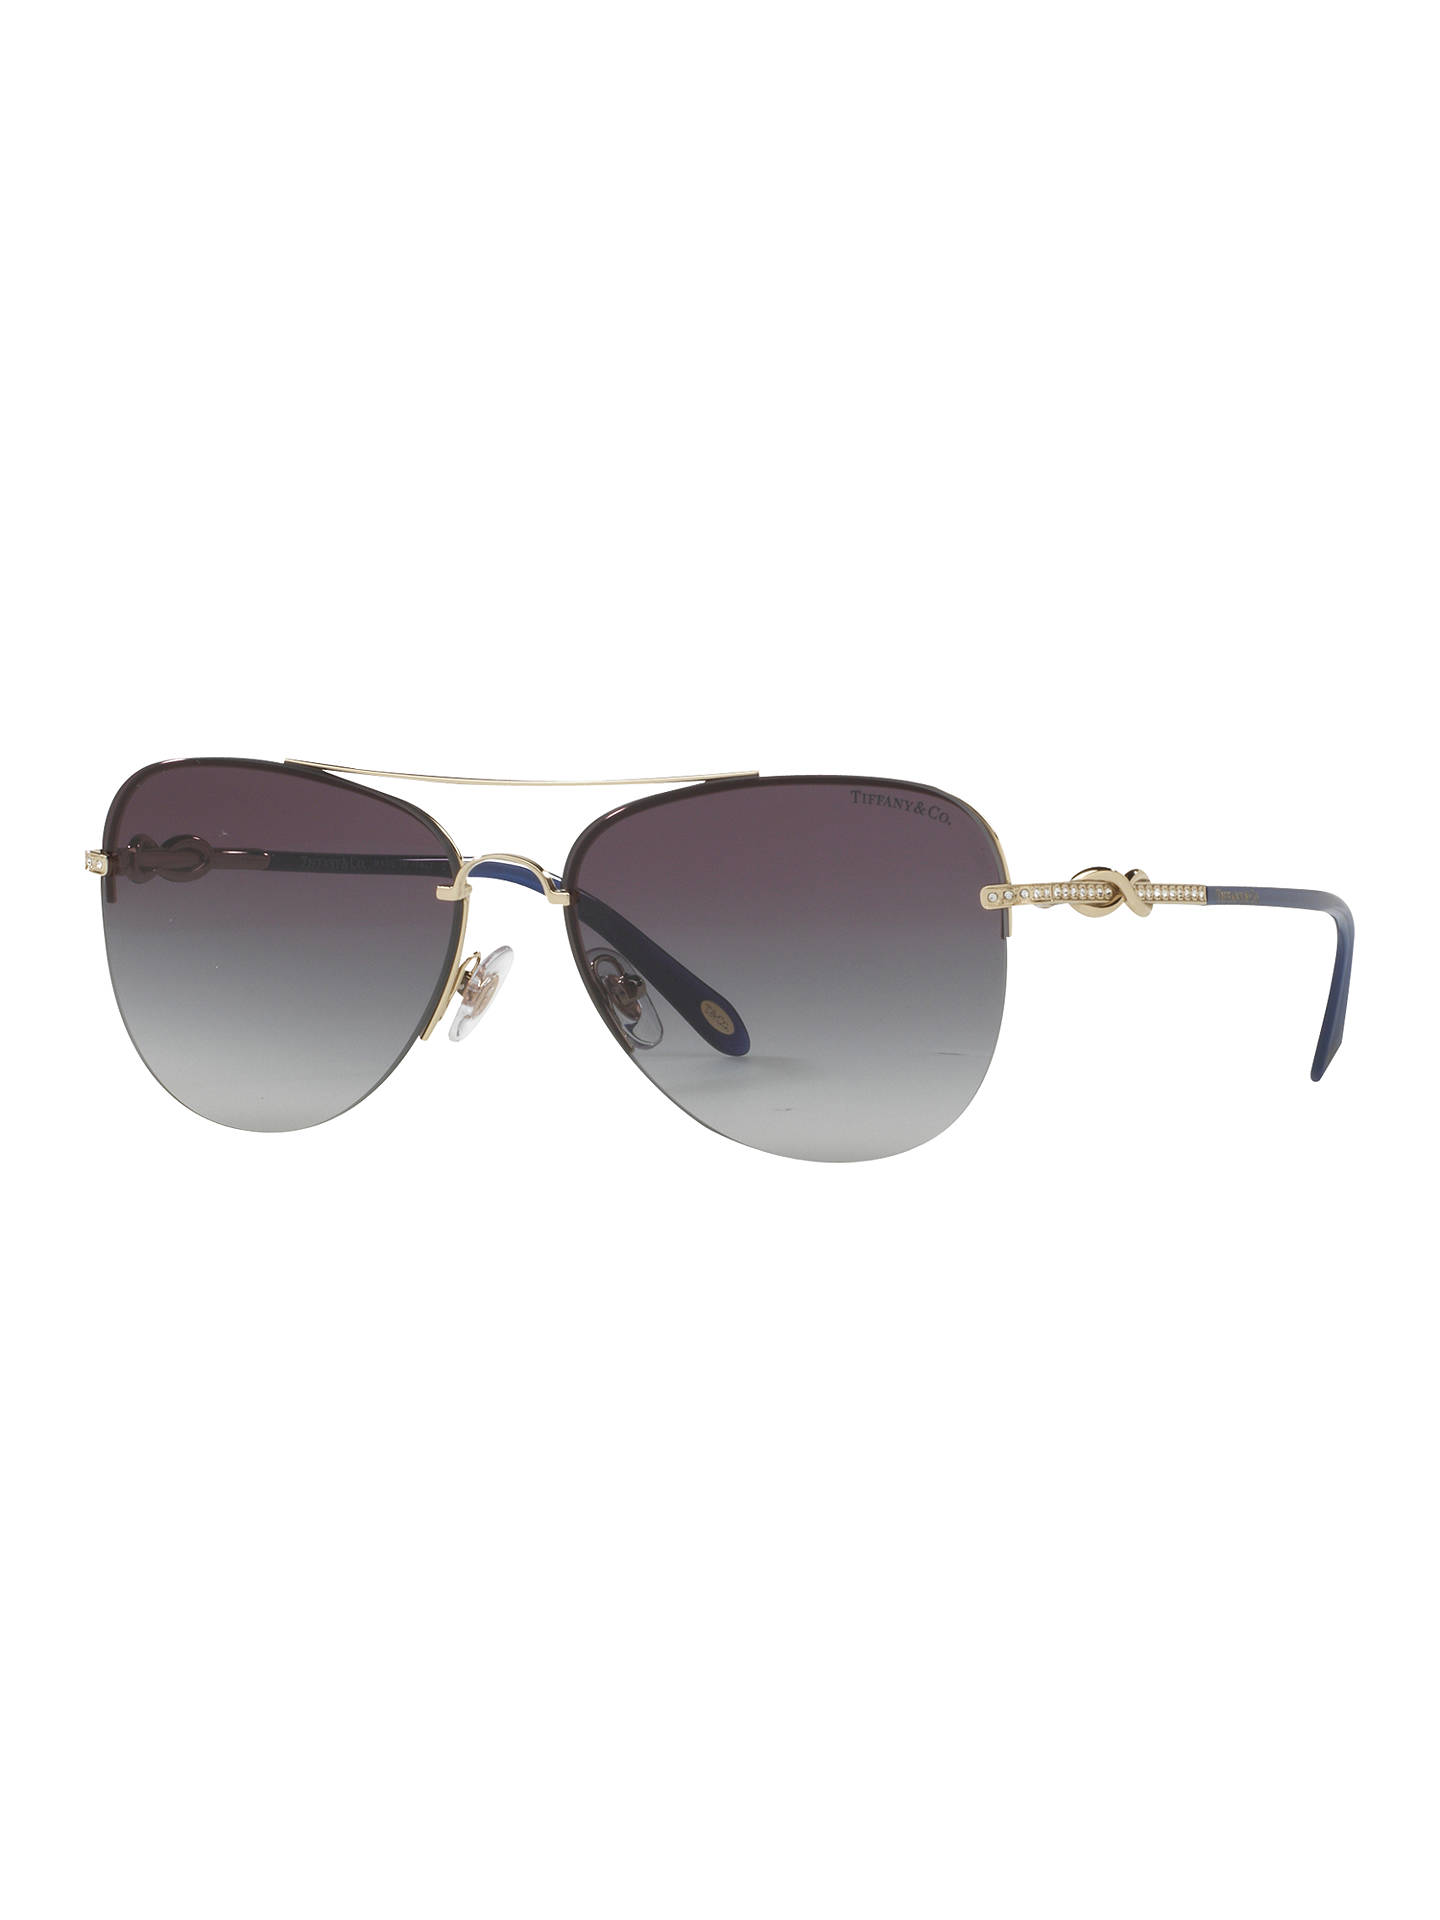 BuyTiffany & Co TF3054B Embellished Aviator Sunglasses, Gold/Grey Gradient Online at johnlewis.com